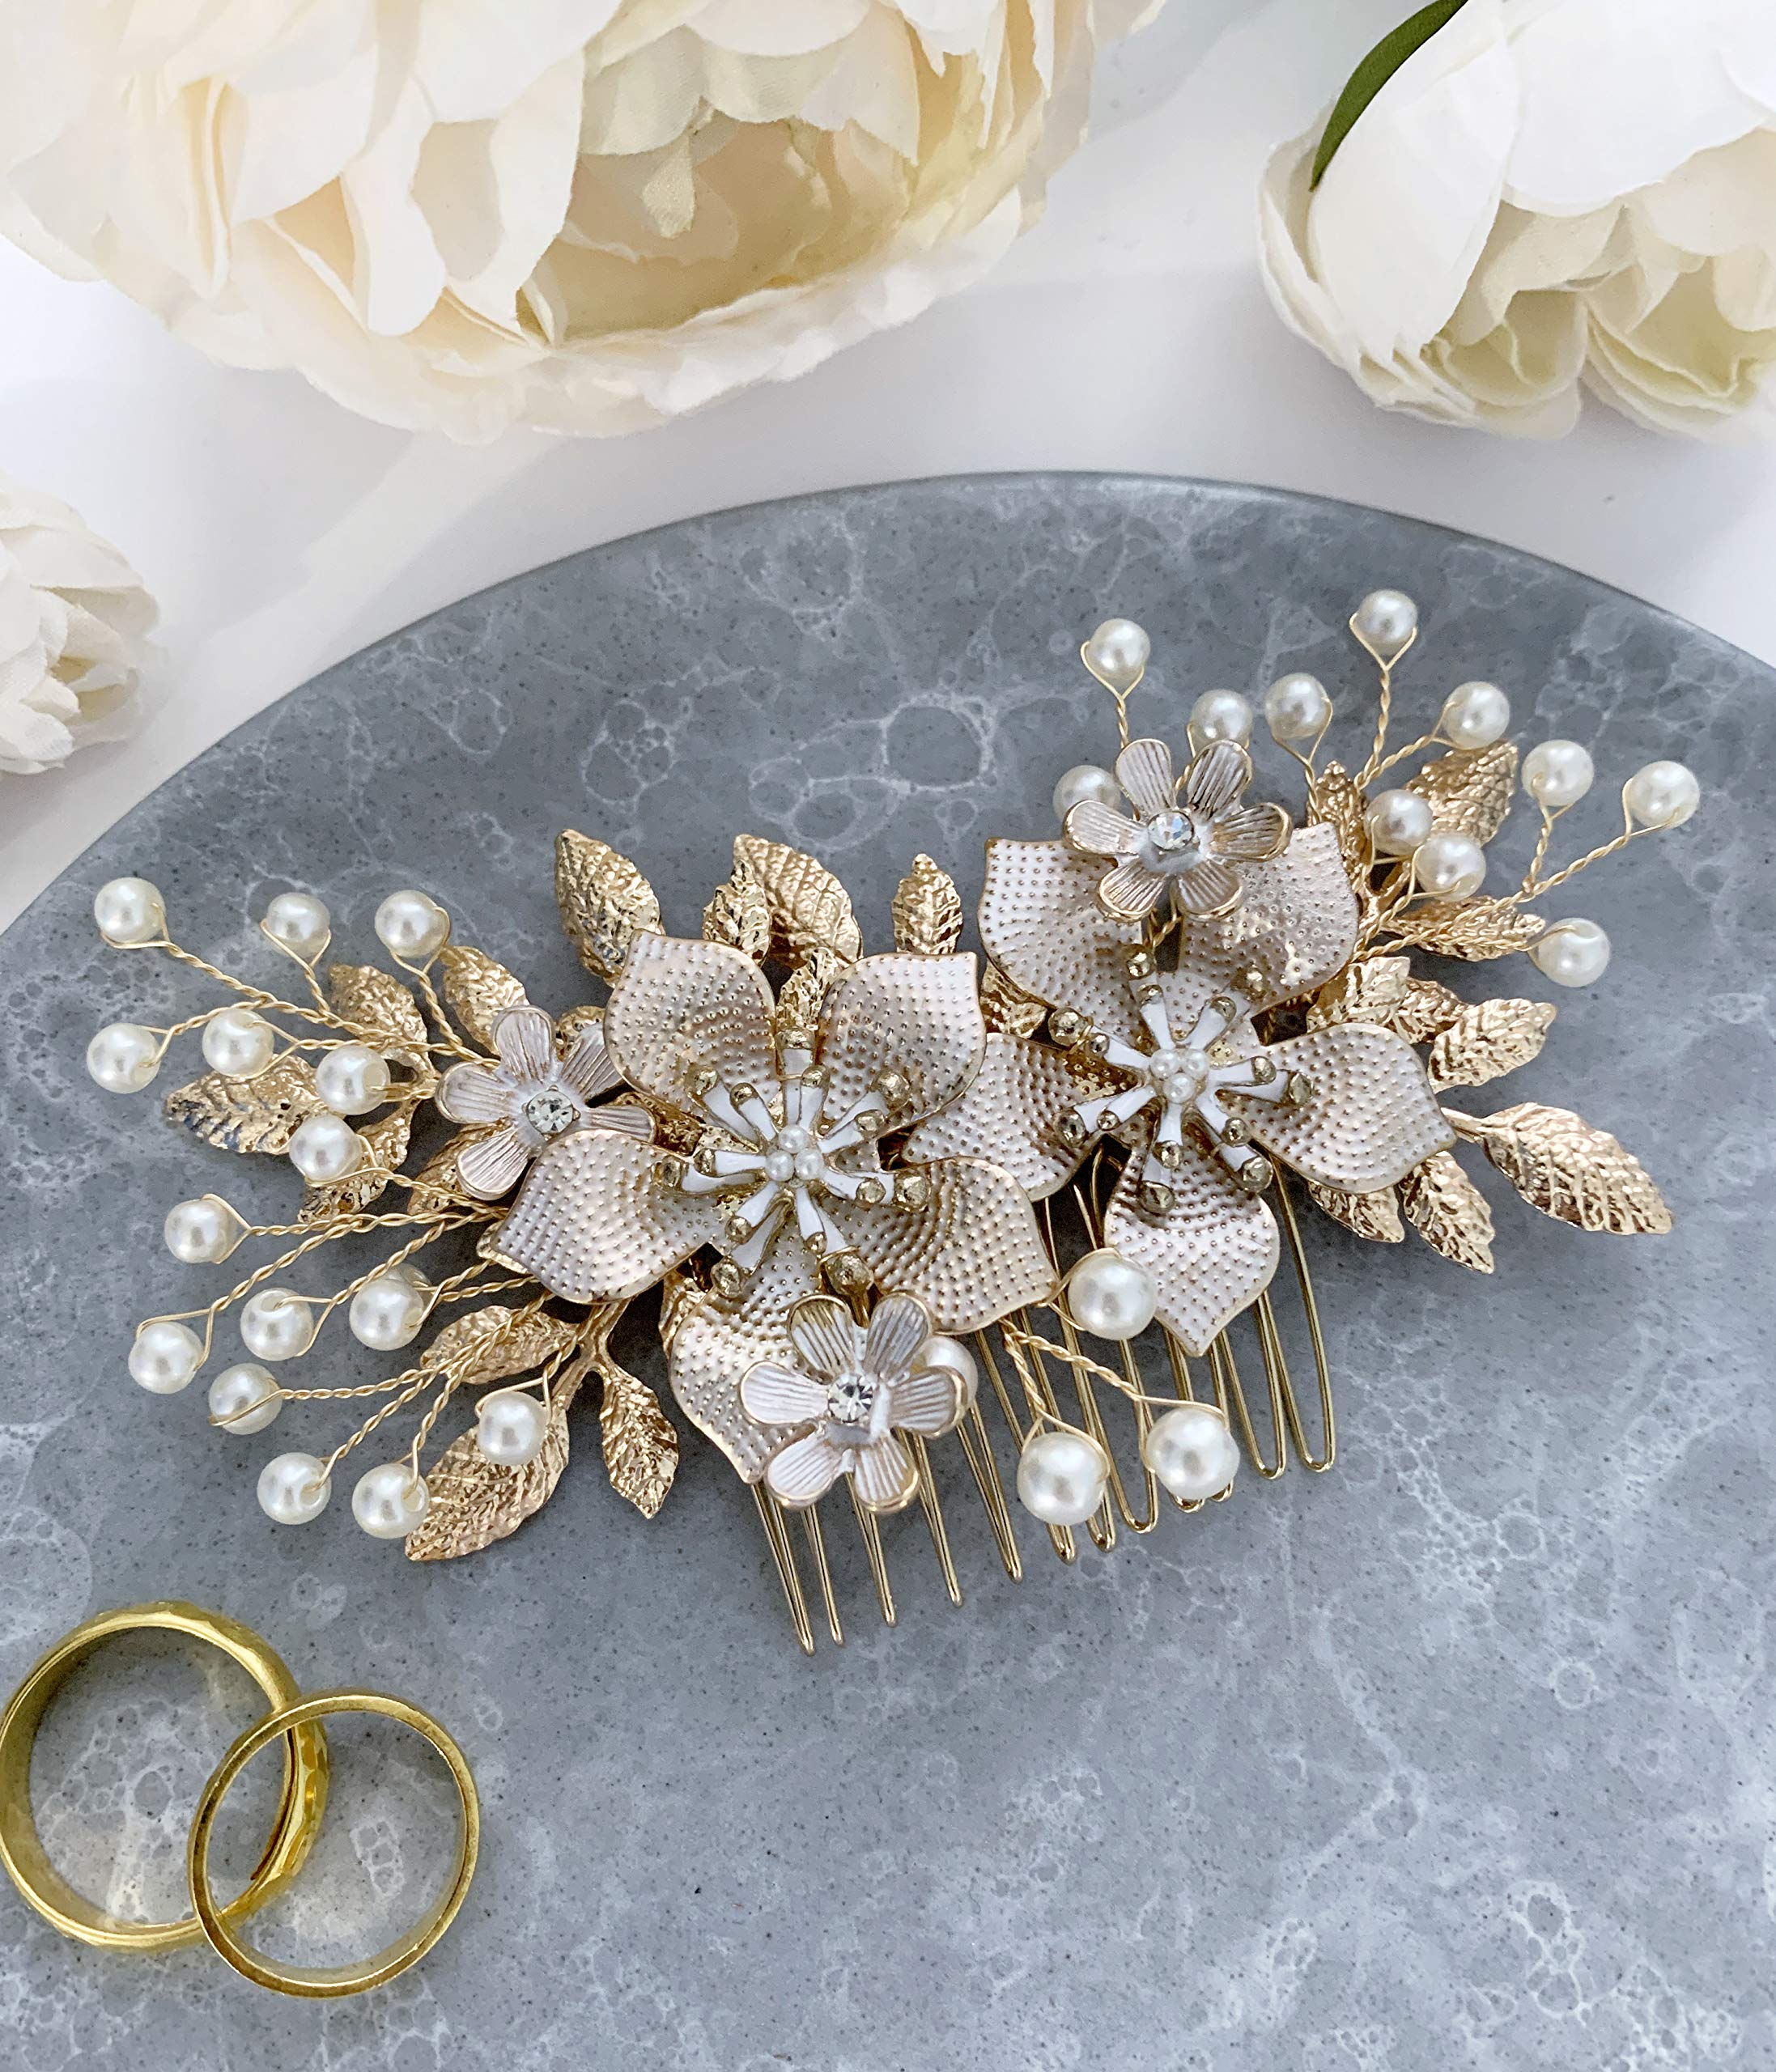 Wedding Hair Accessories Bridal Hair Comb Pearl and Gold Floral Hair Pin Headpiece - For Brides and Bridesmaids by The White Toolbox